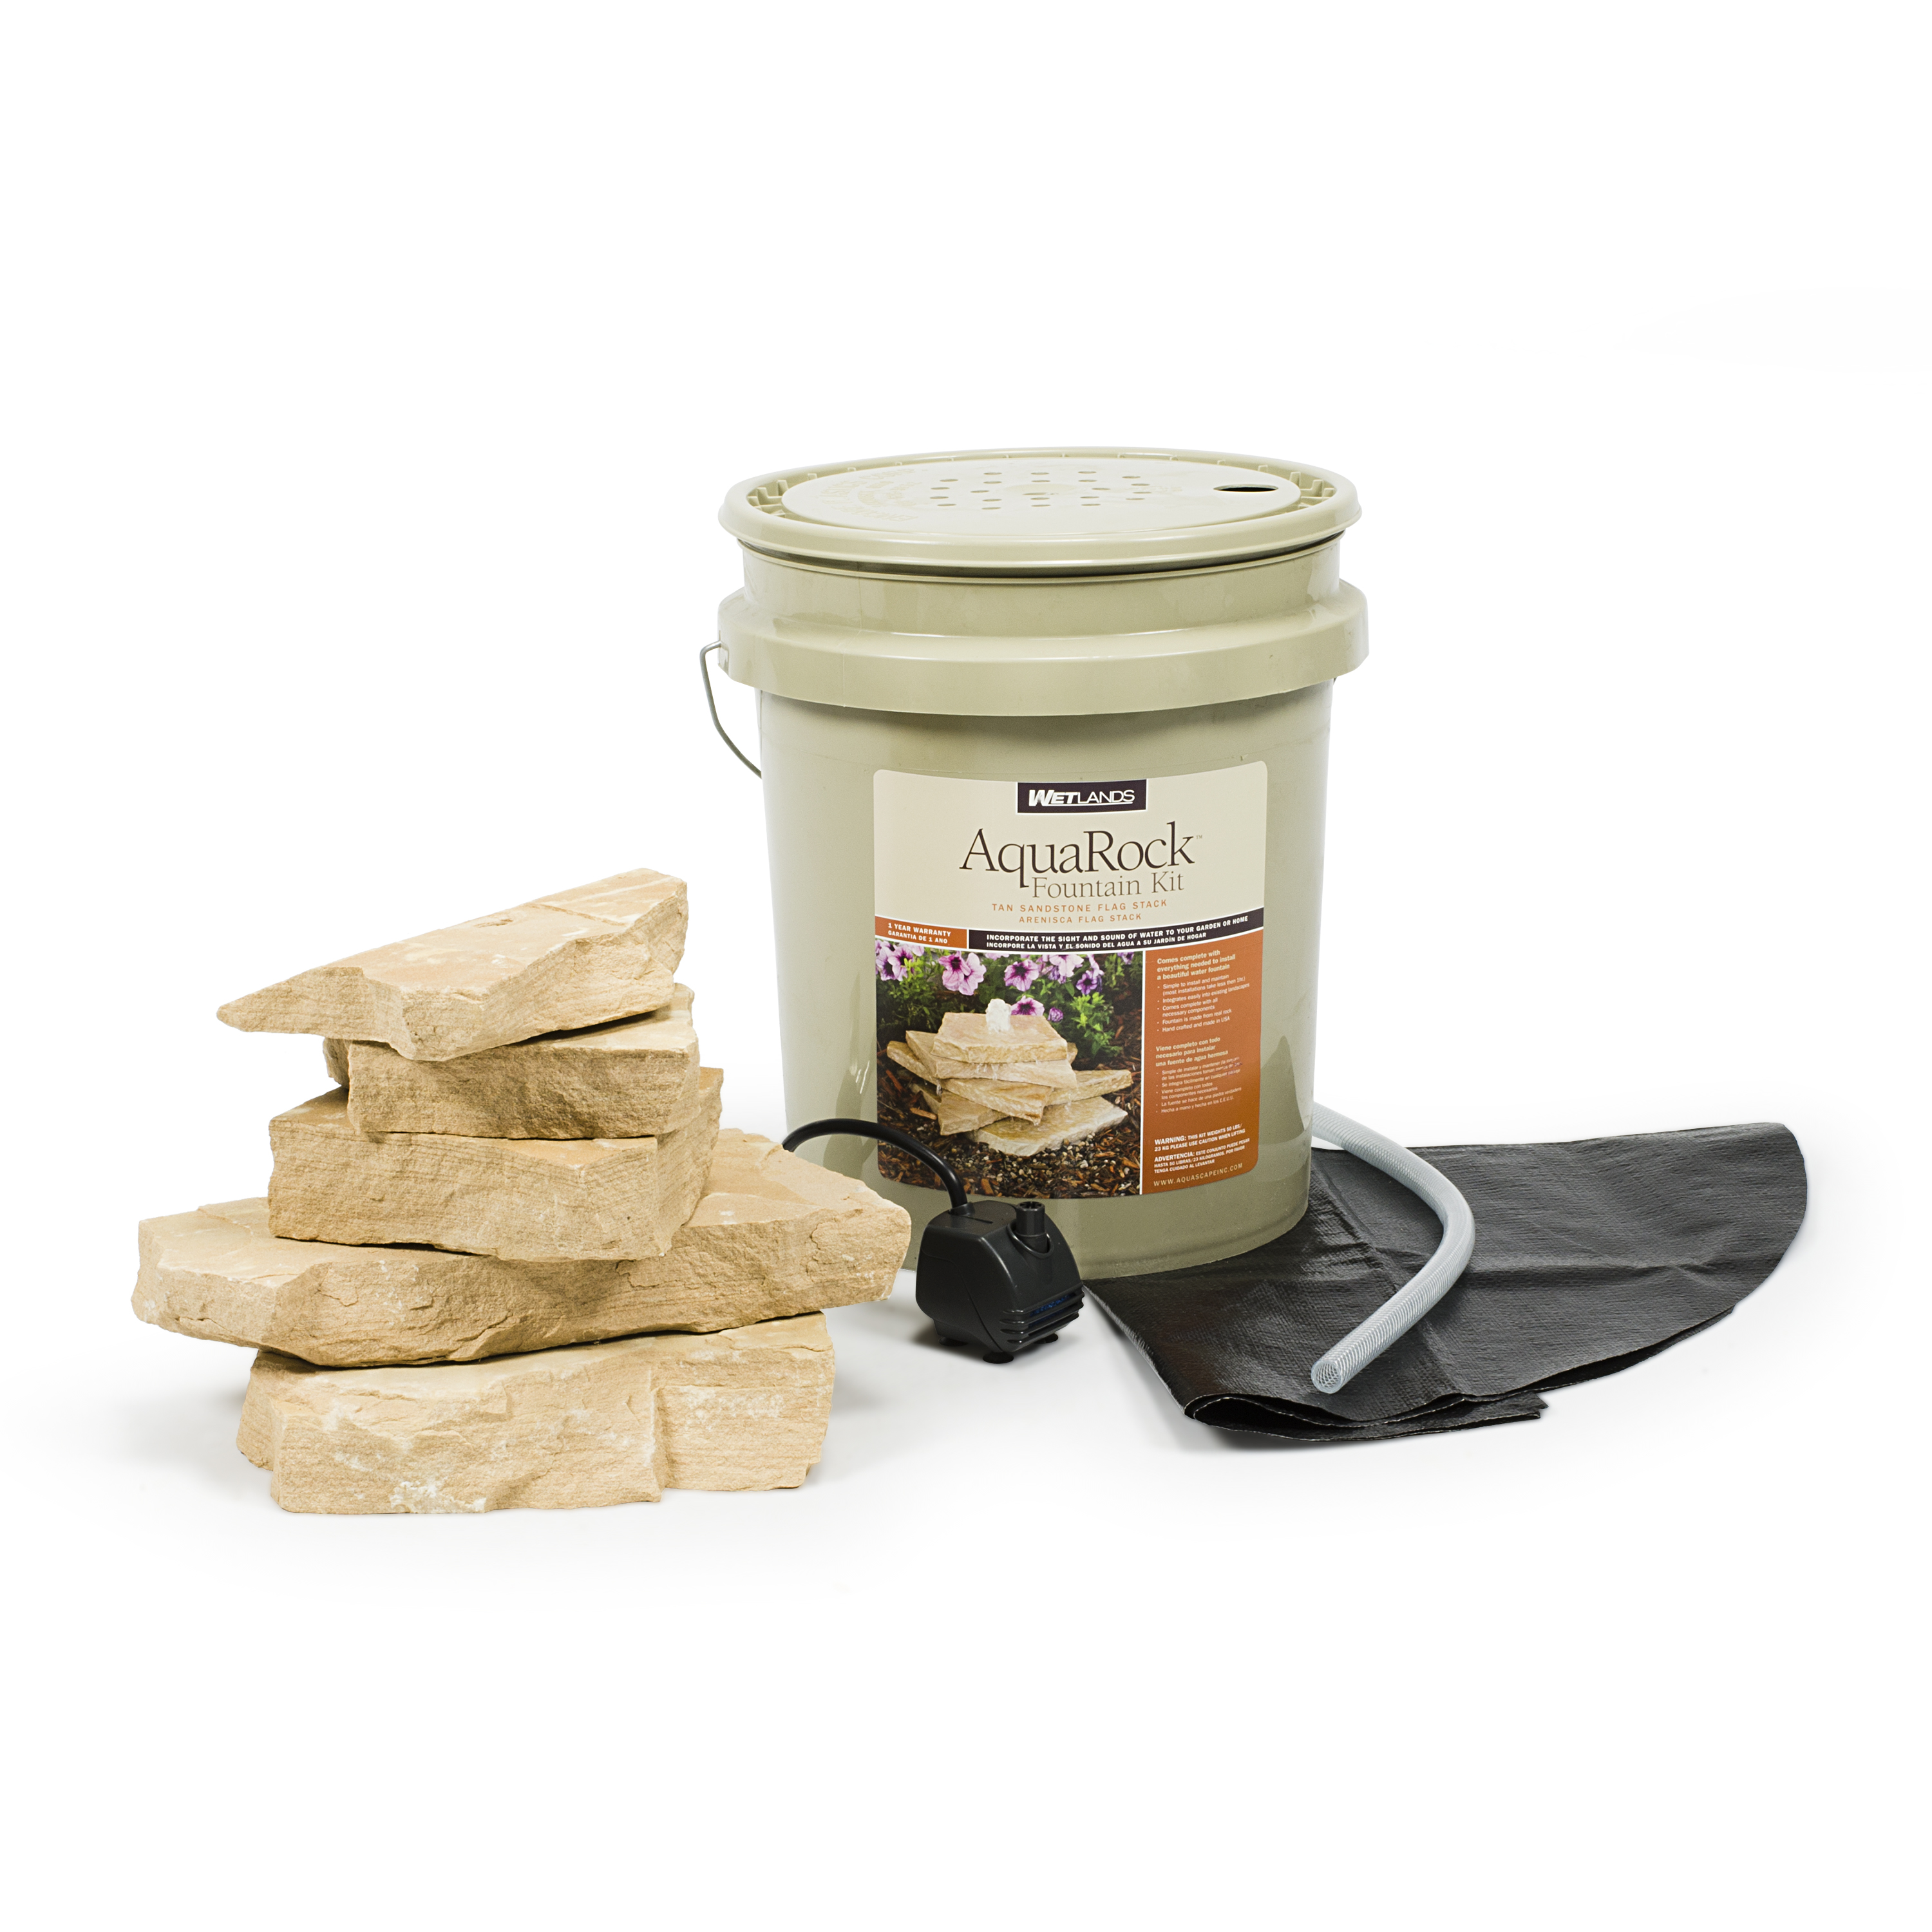 AquaRock Sandstone Kit